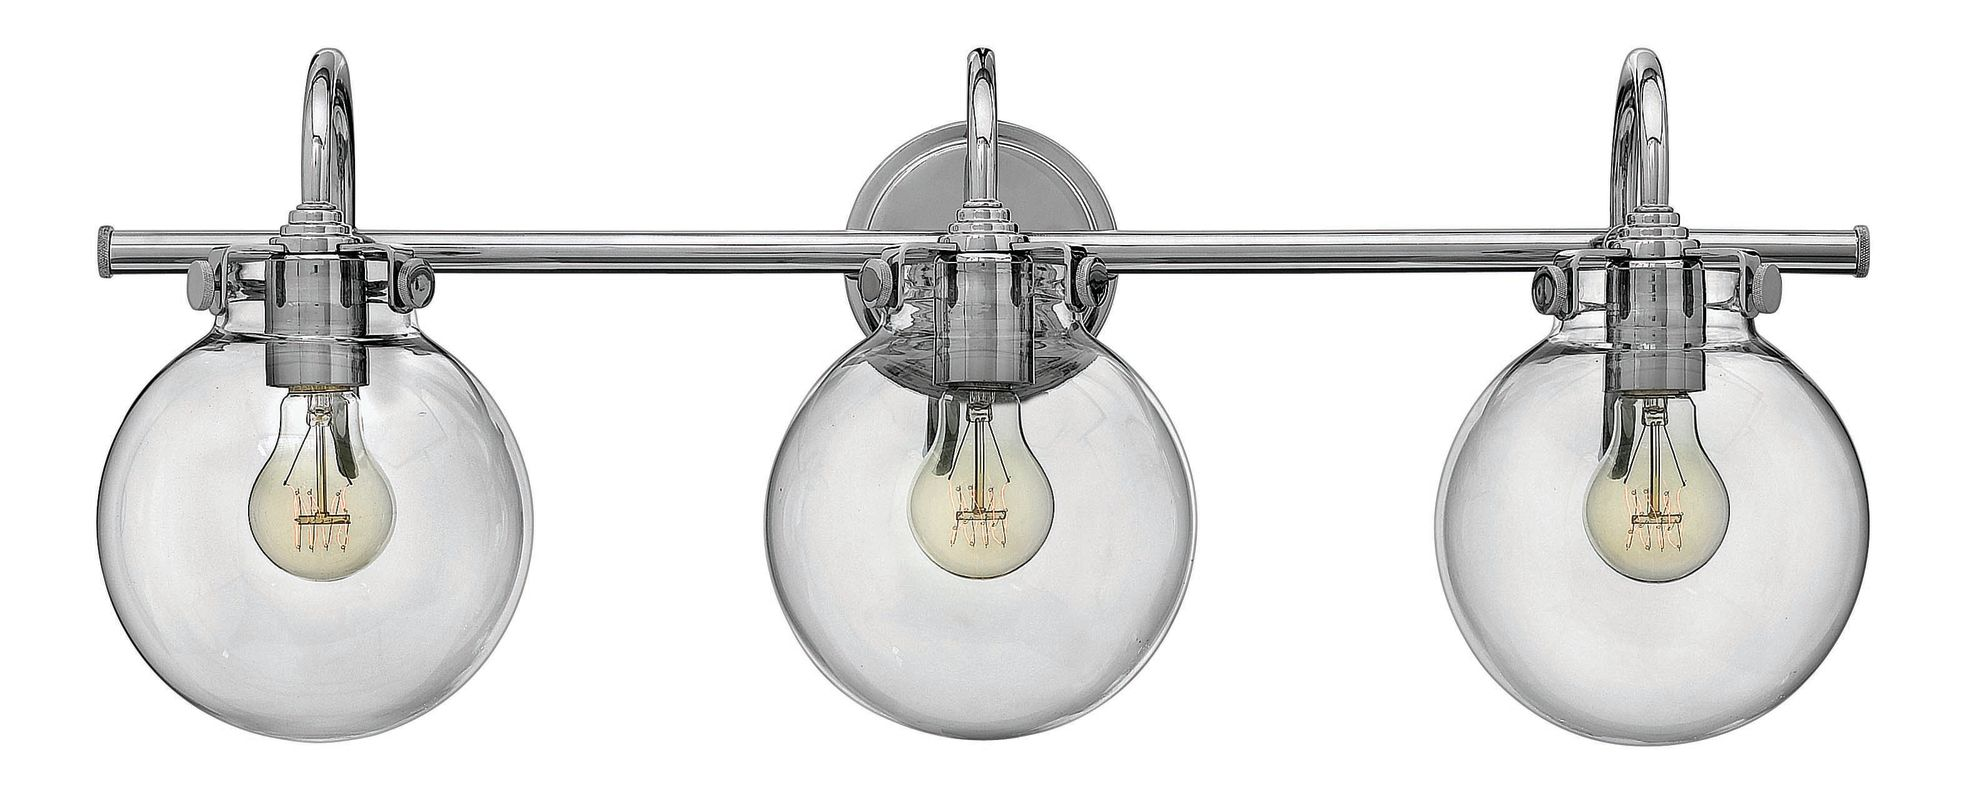 Hinkley Lighting 50034CM Chrome Industrial Congress Bathroom Light Sale $419.00 ITEM: bci2362265 ID#:50034CM UPC: 640665500813 :